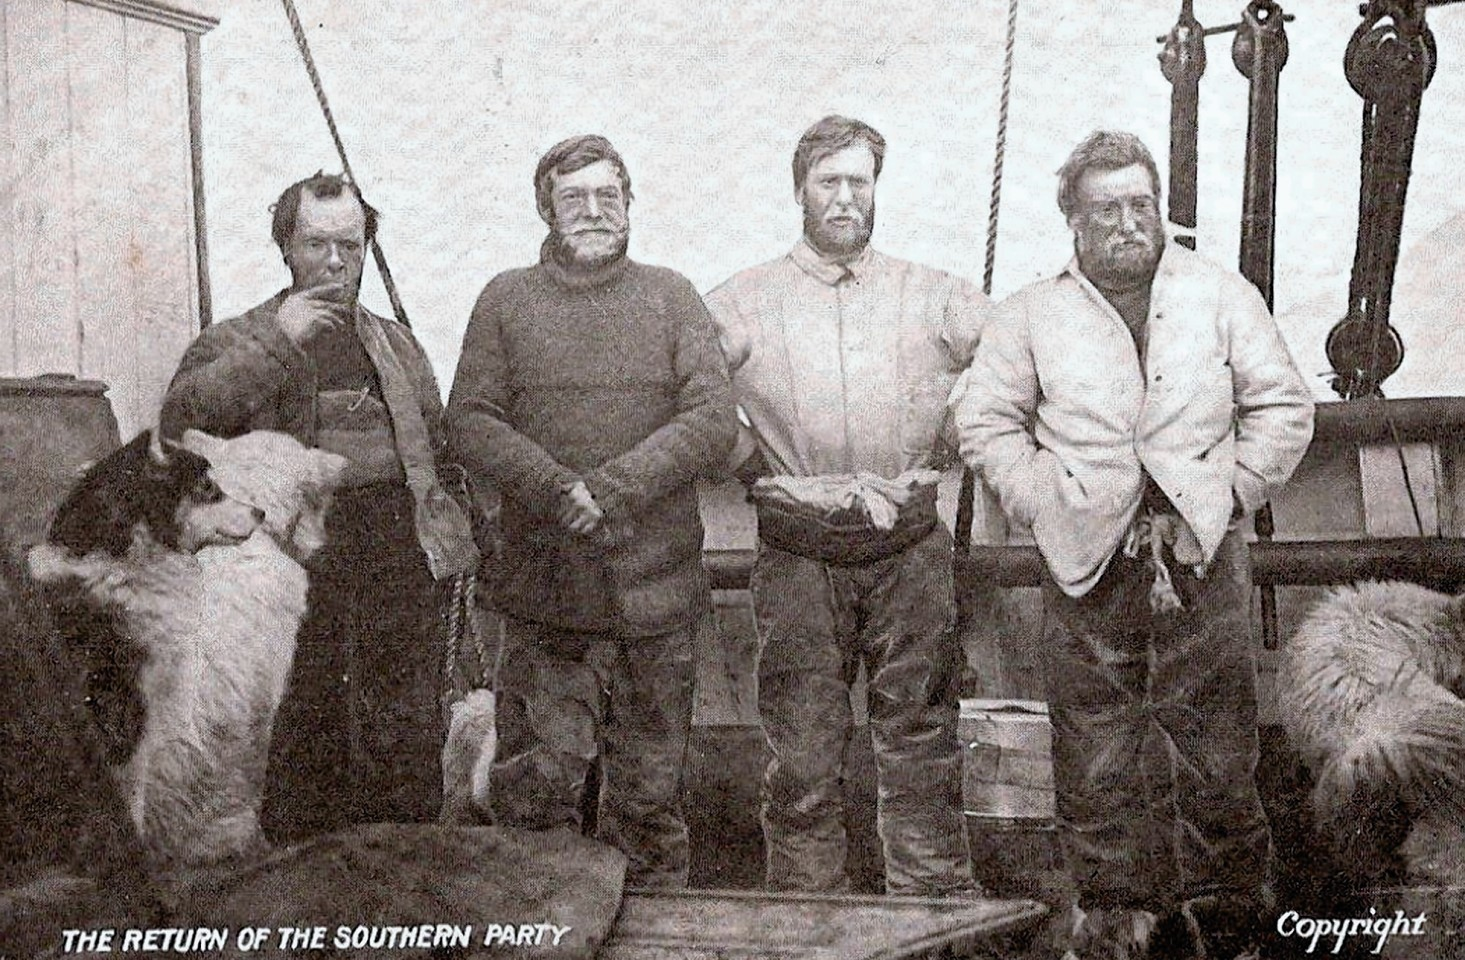 Undated Shackleton Foundation handout photo showing Sir Ernest Shackleton's South Pole expedition team, left to right, Frank Wild, Sir Ernest Shackleton, Eric Marshall and Jameson Boyd-Adams. PRESS ASSOCIATION Photo.